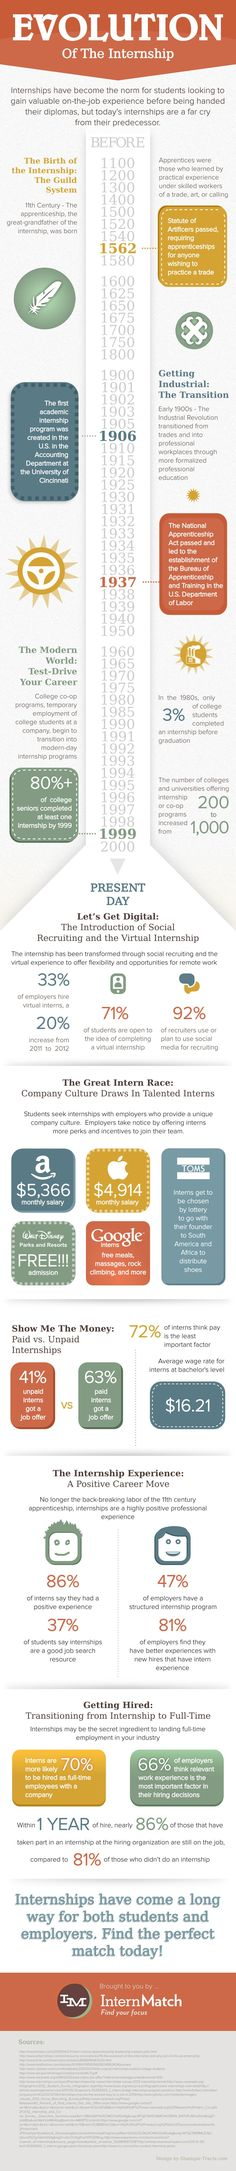 Internships make you 70% more likely to get hired full-time by a company. How about them apples?